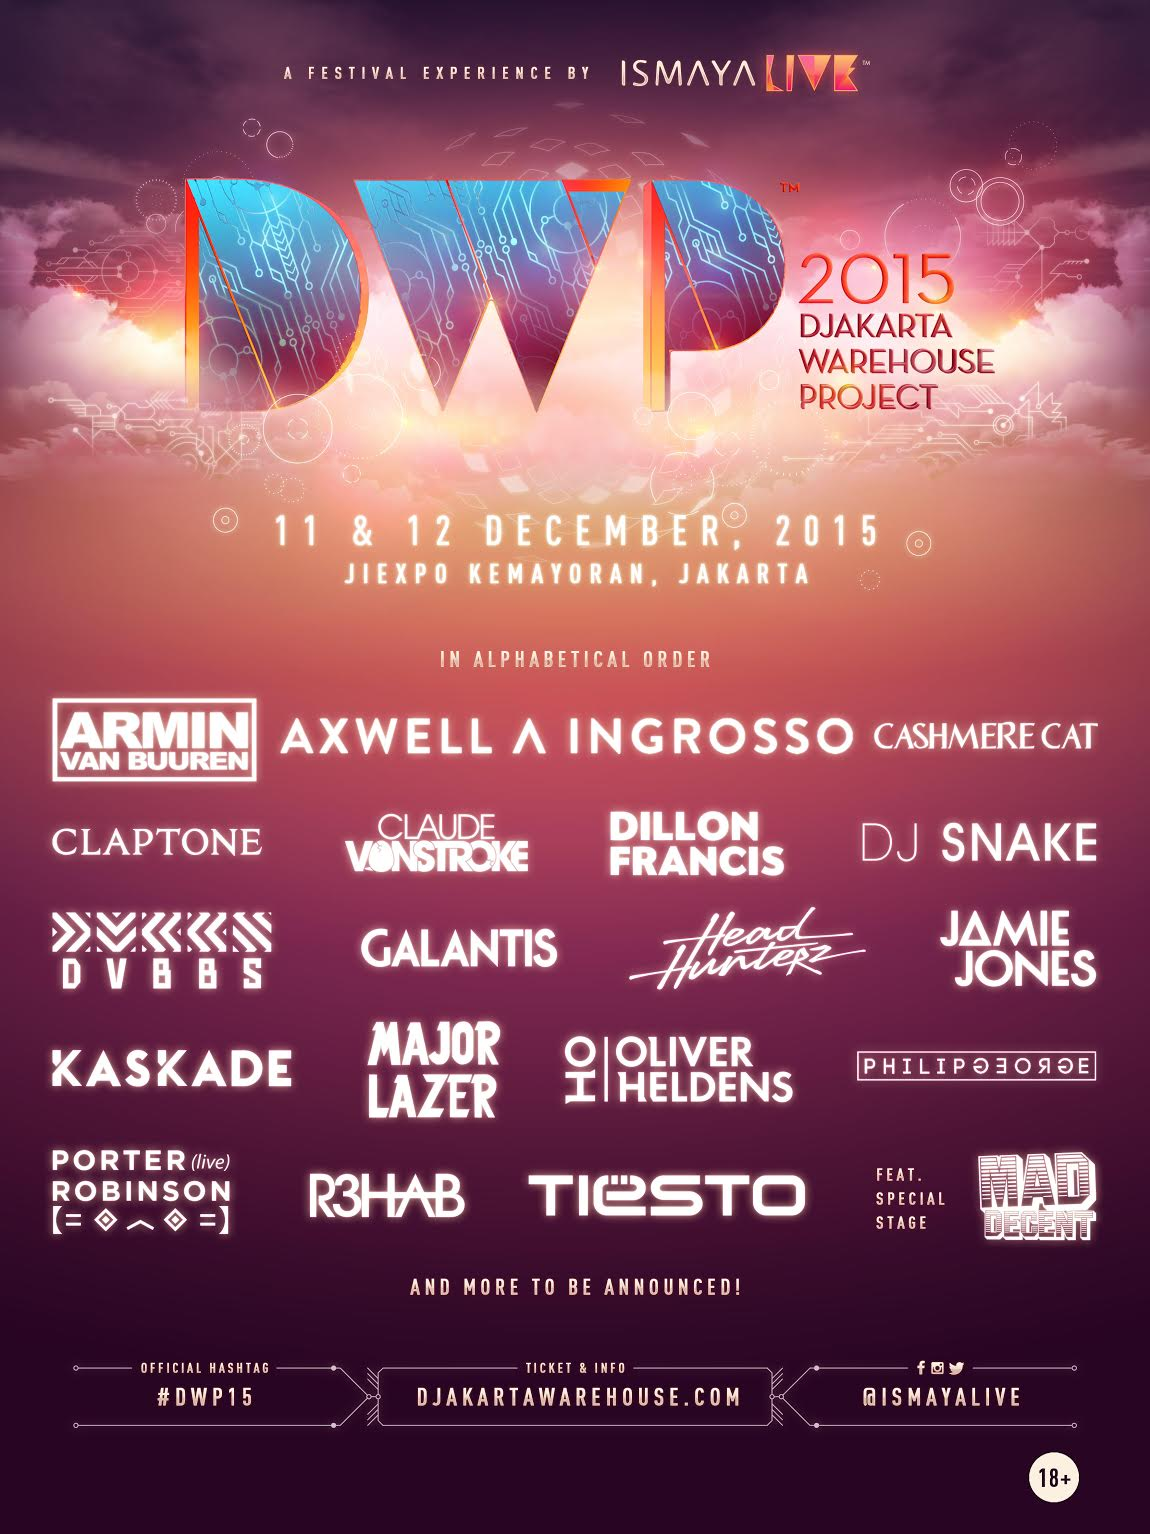 djakarta-warehouse-project